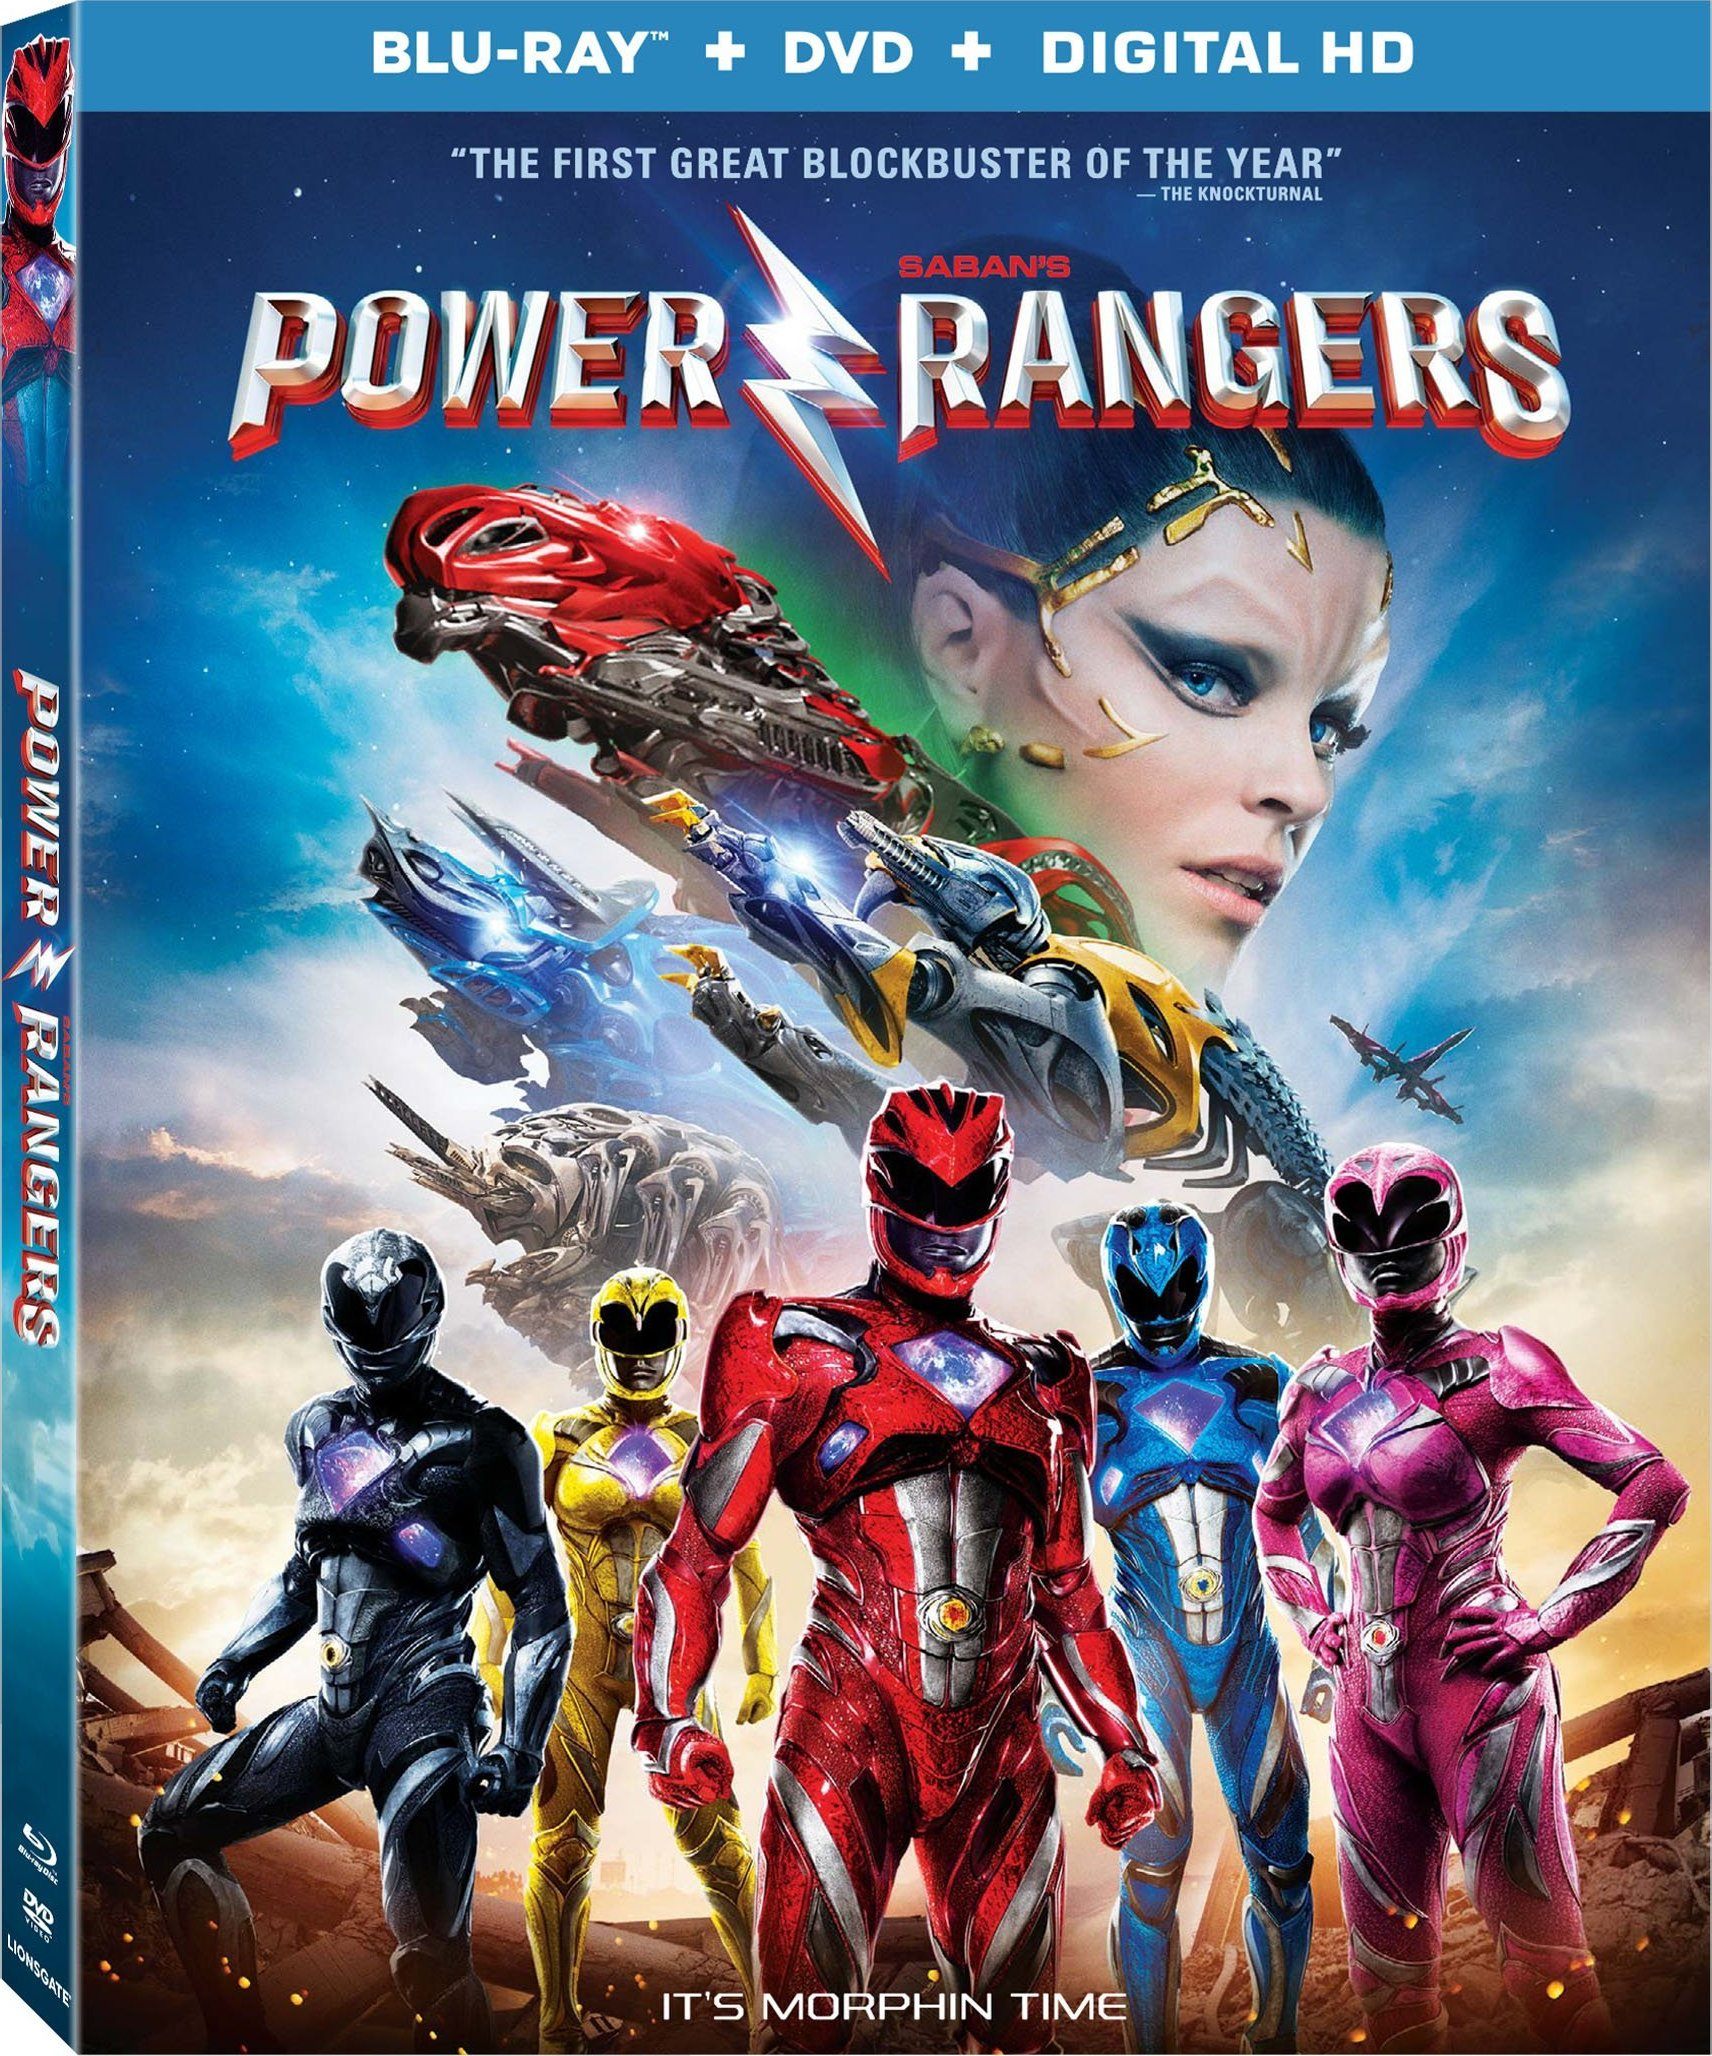 Power Rangers (2017) poster image